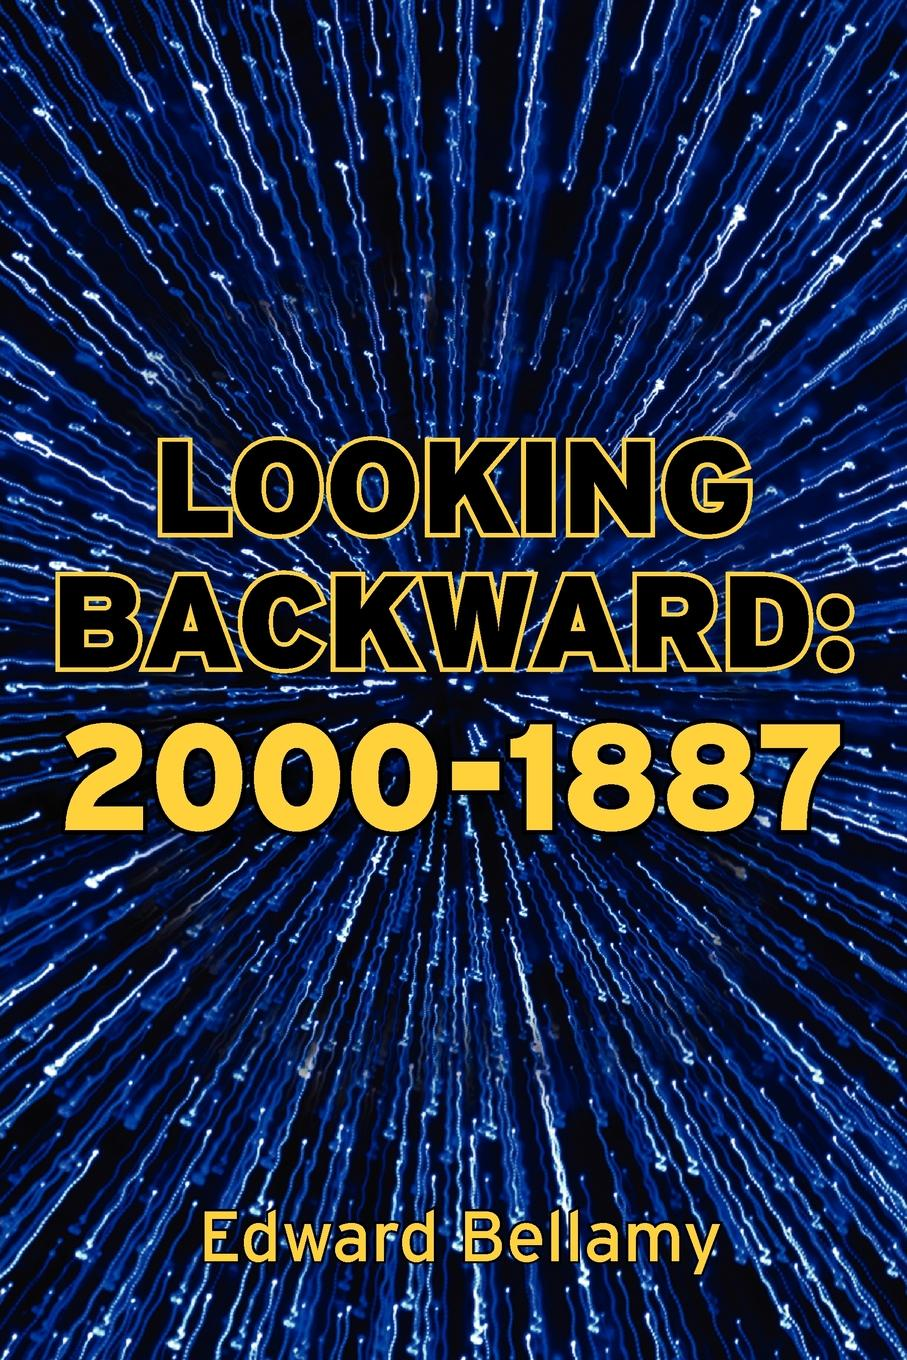 Edward Bellamy Looking Backward. 2000-1887 cengage learning gale a study guide for edward bellamy s looking backward 2000 1887